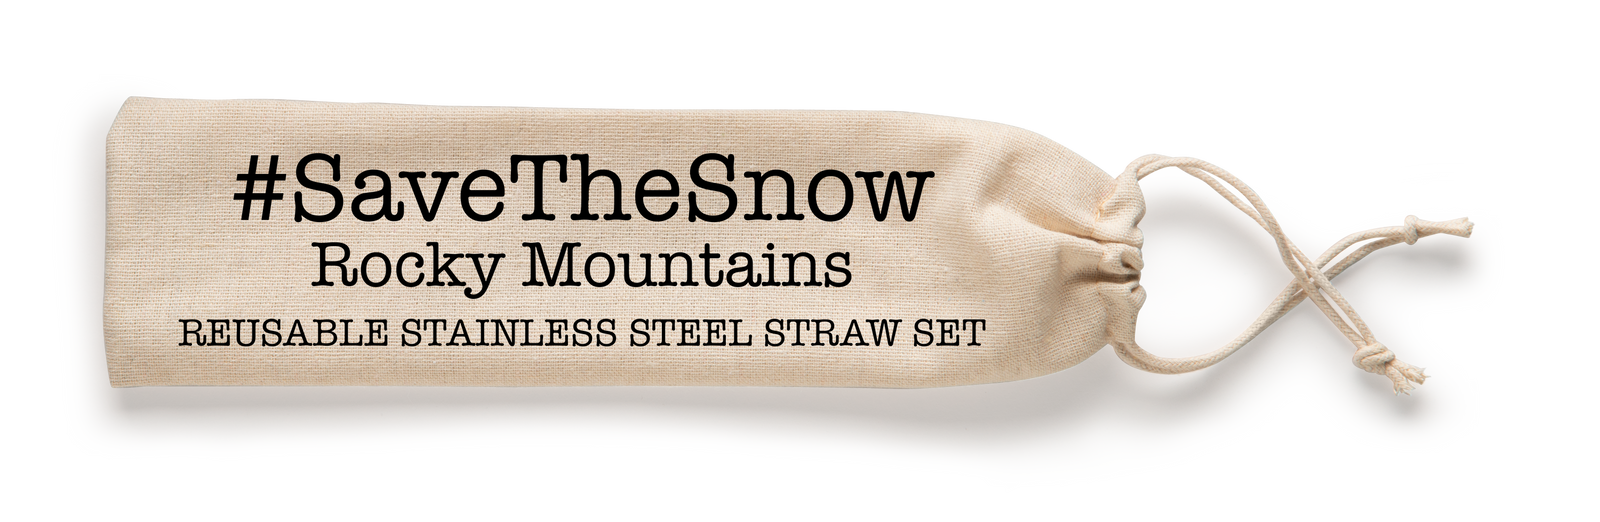 #SaveTheSnow Rocky Mountains Reusable Drinking Straw